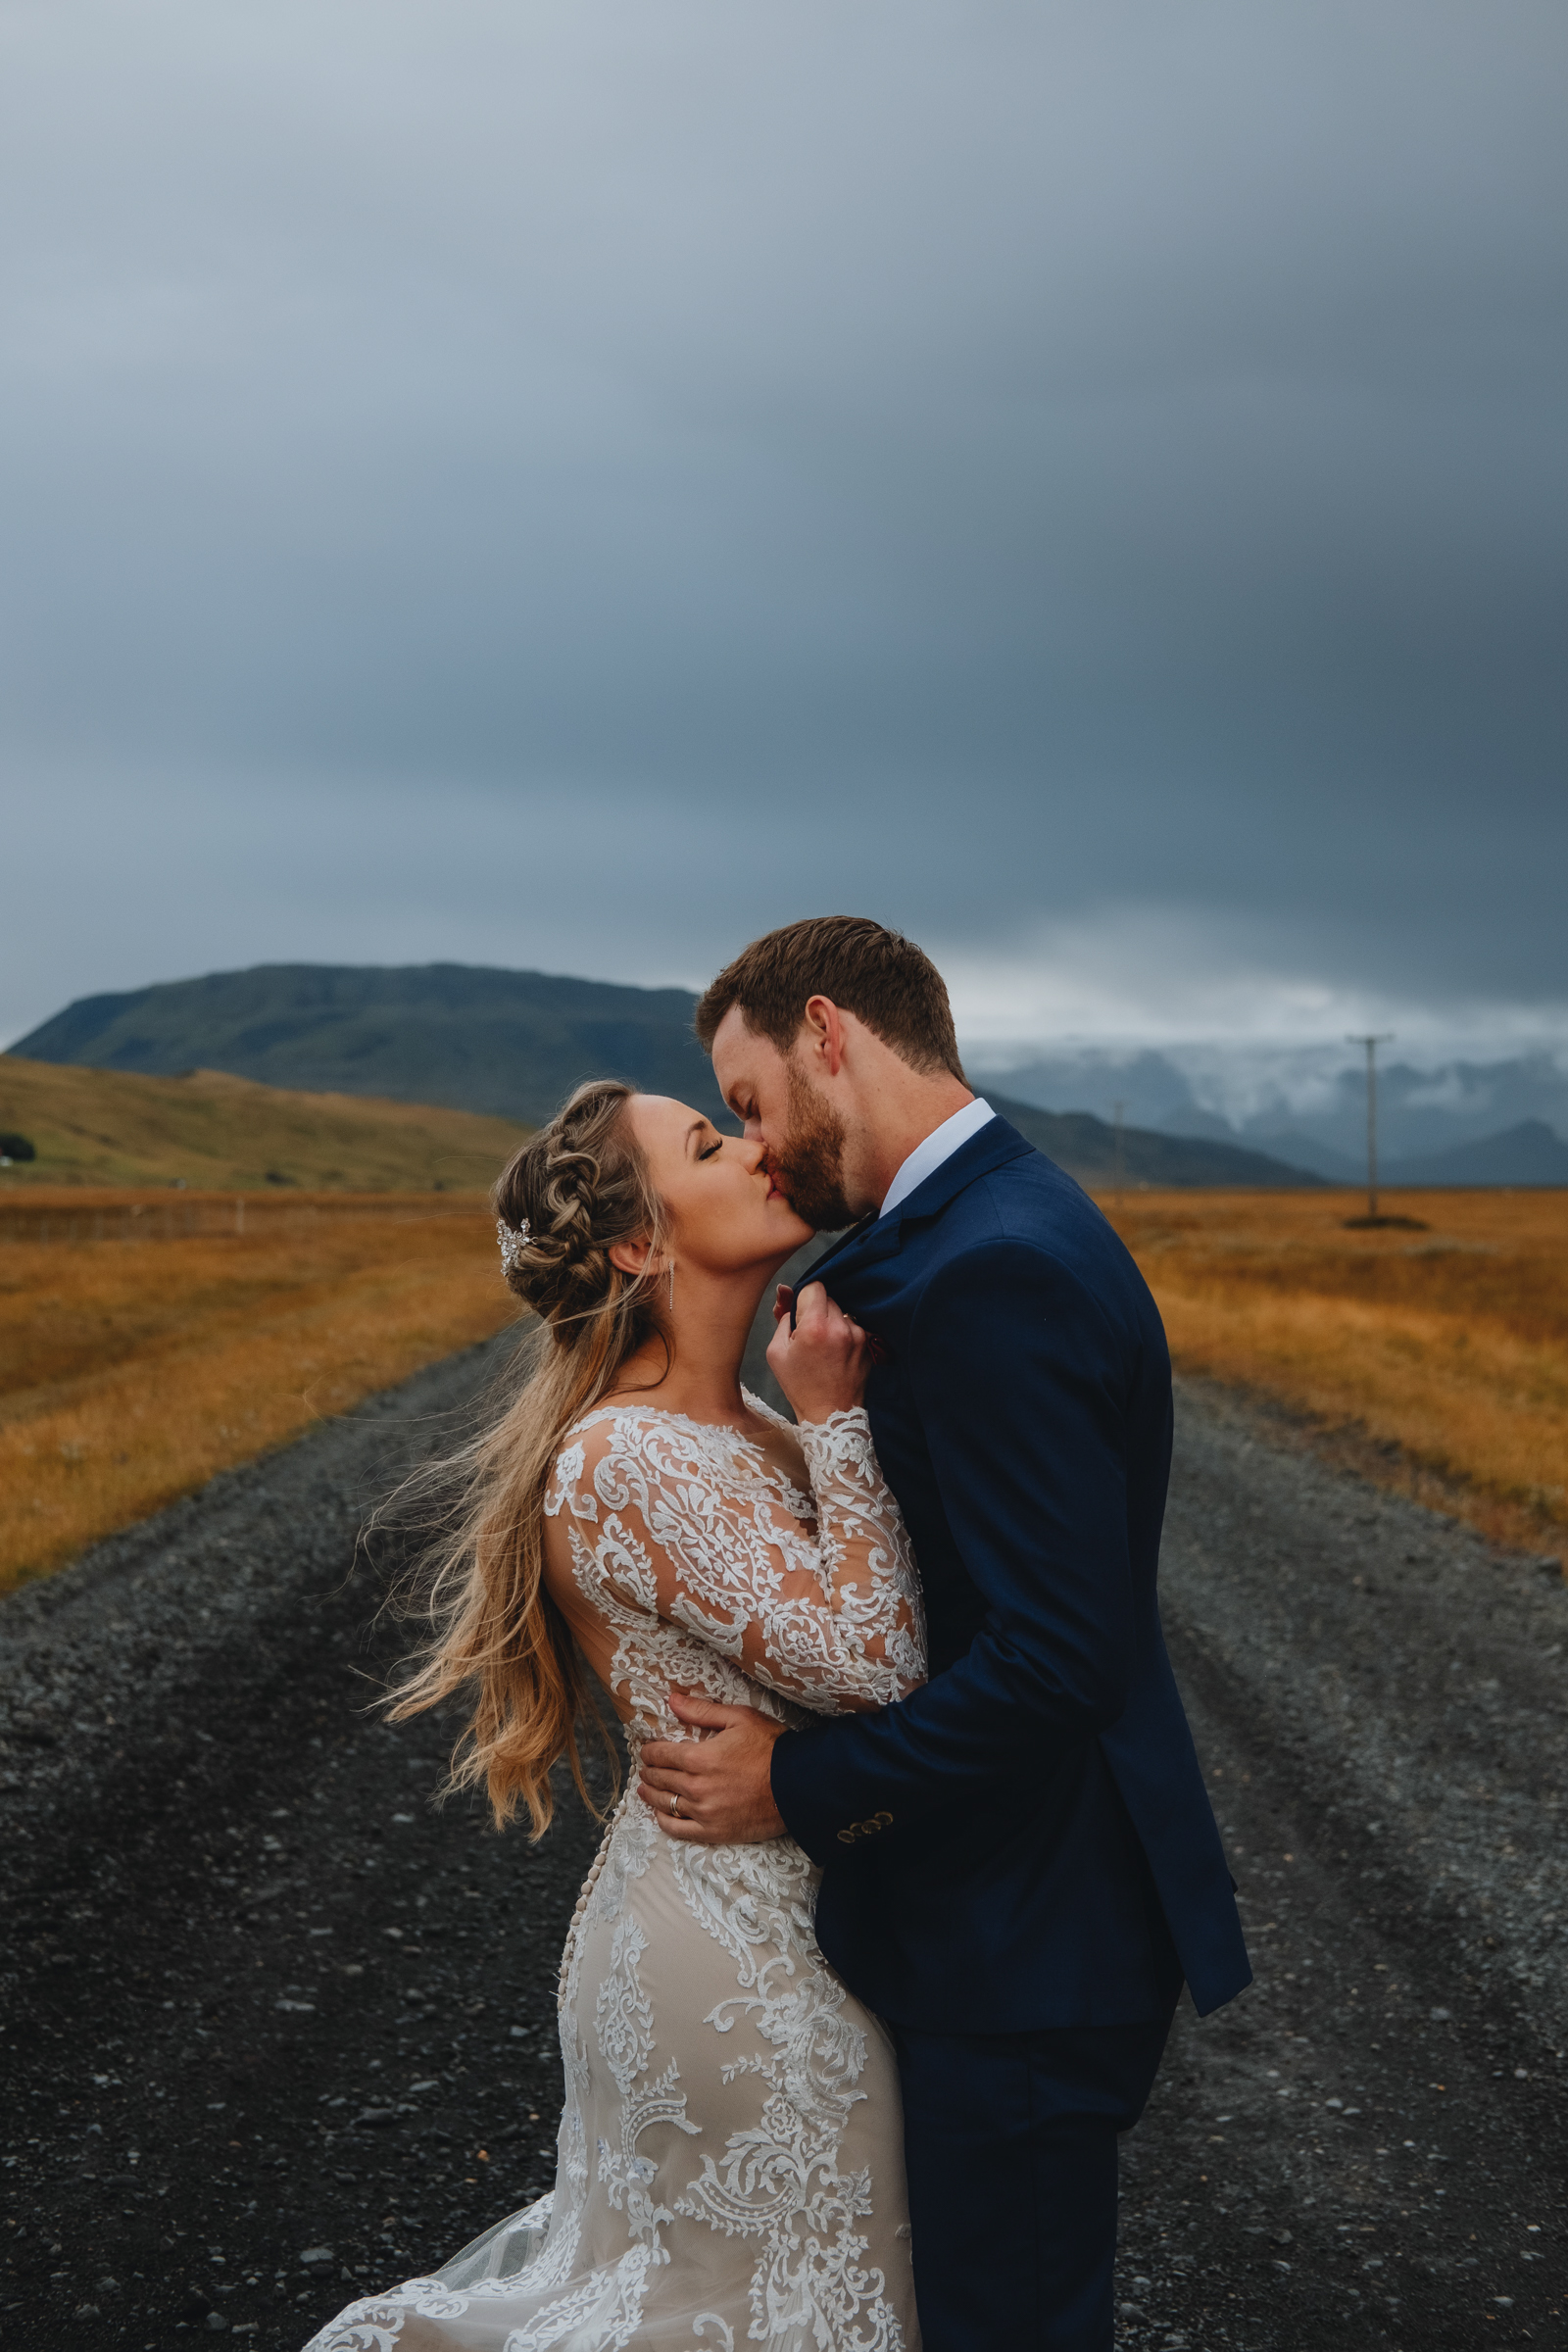 Elopement couple kiss on road to nowhere - photo by Christin Eide Photography